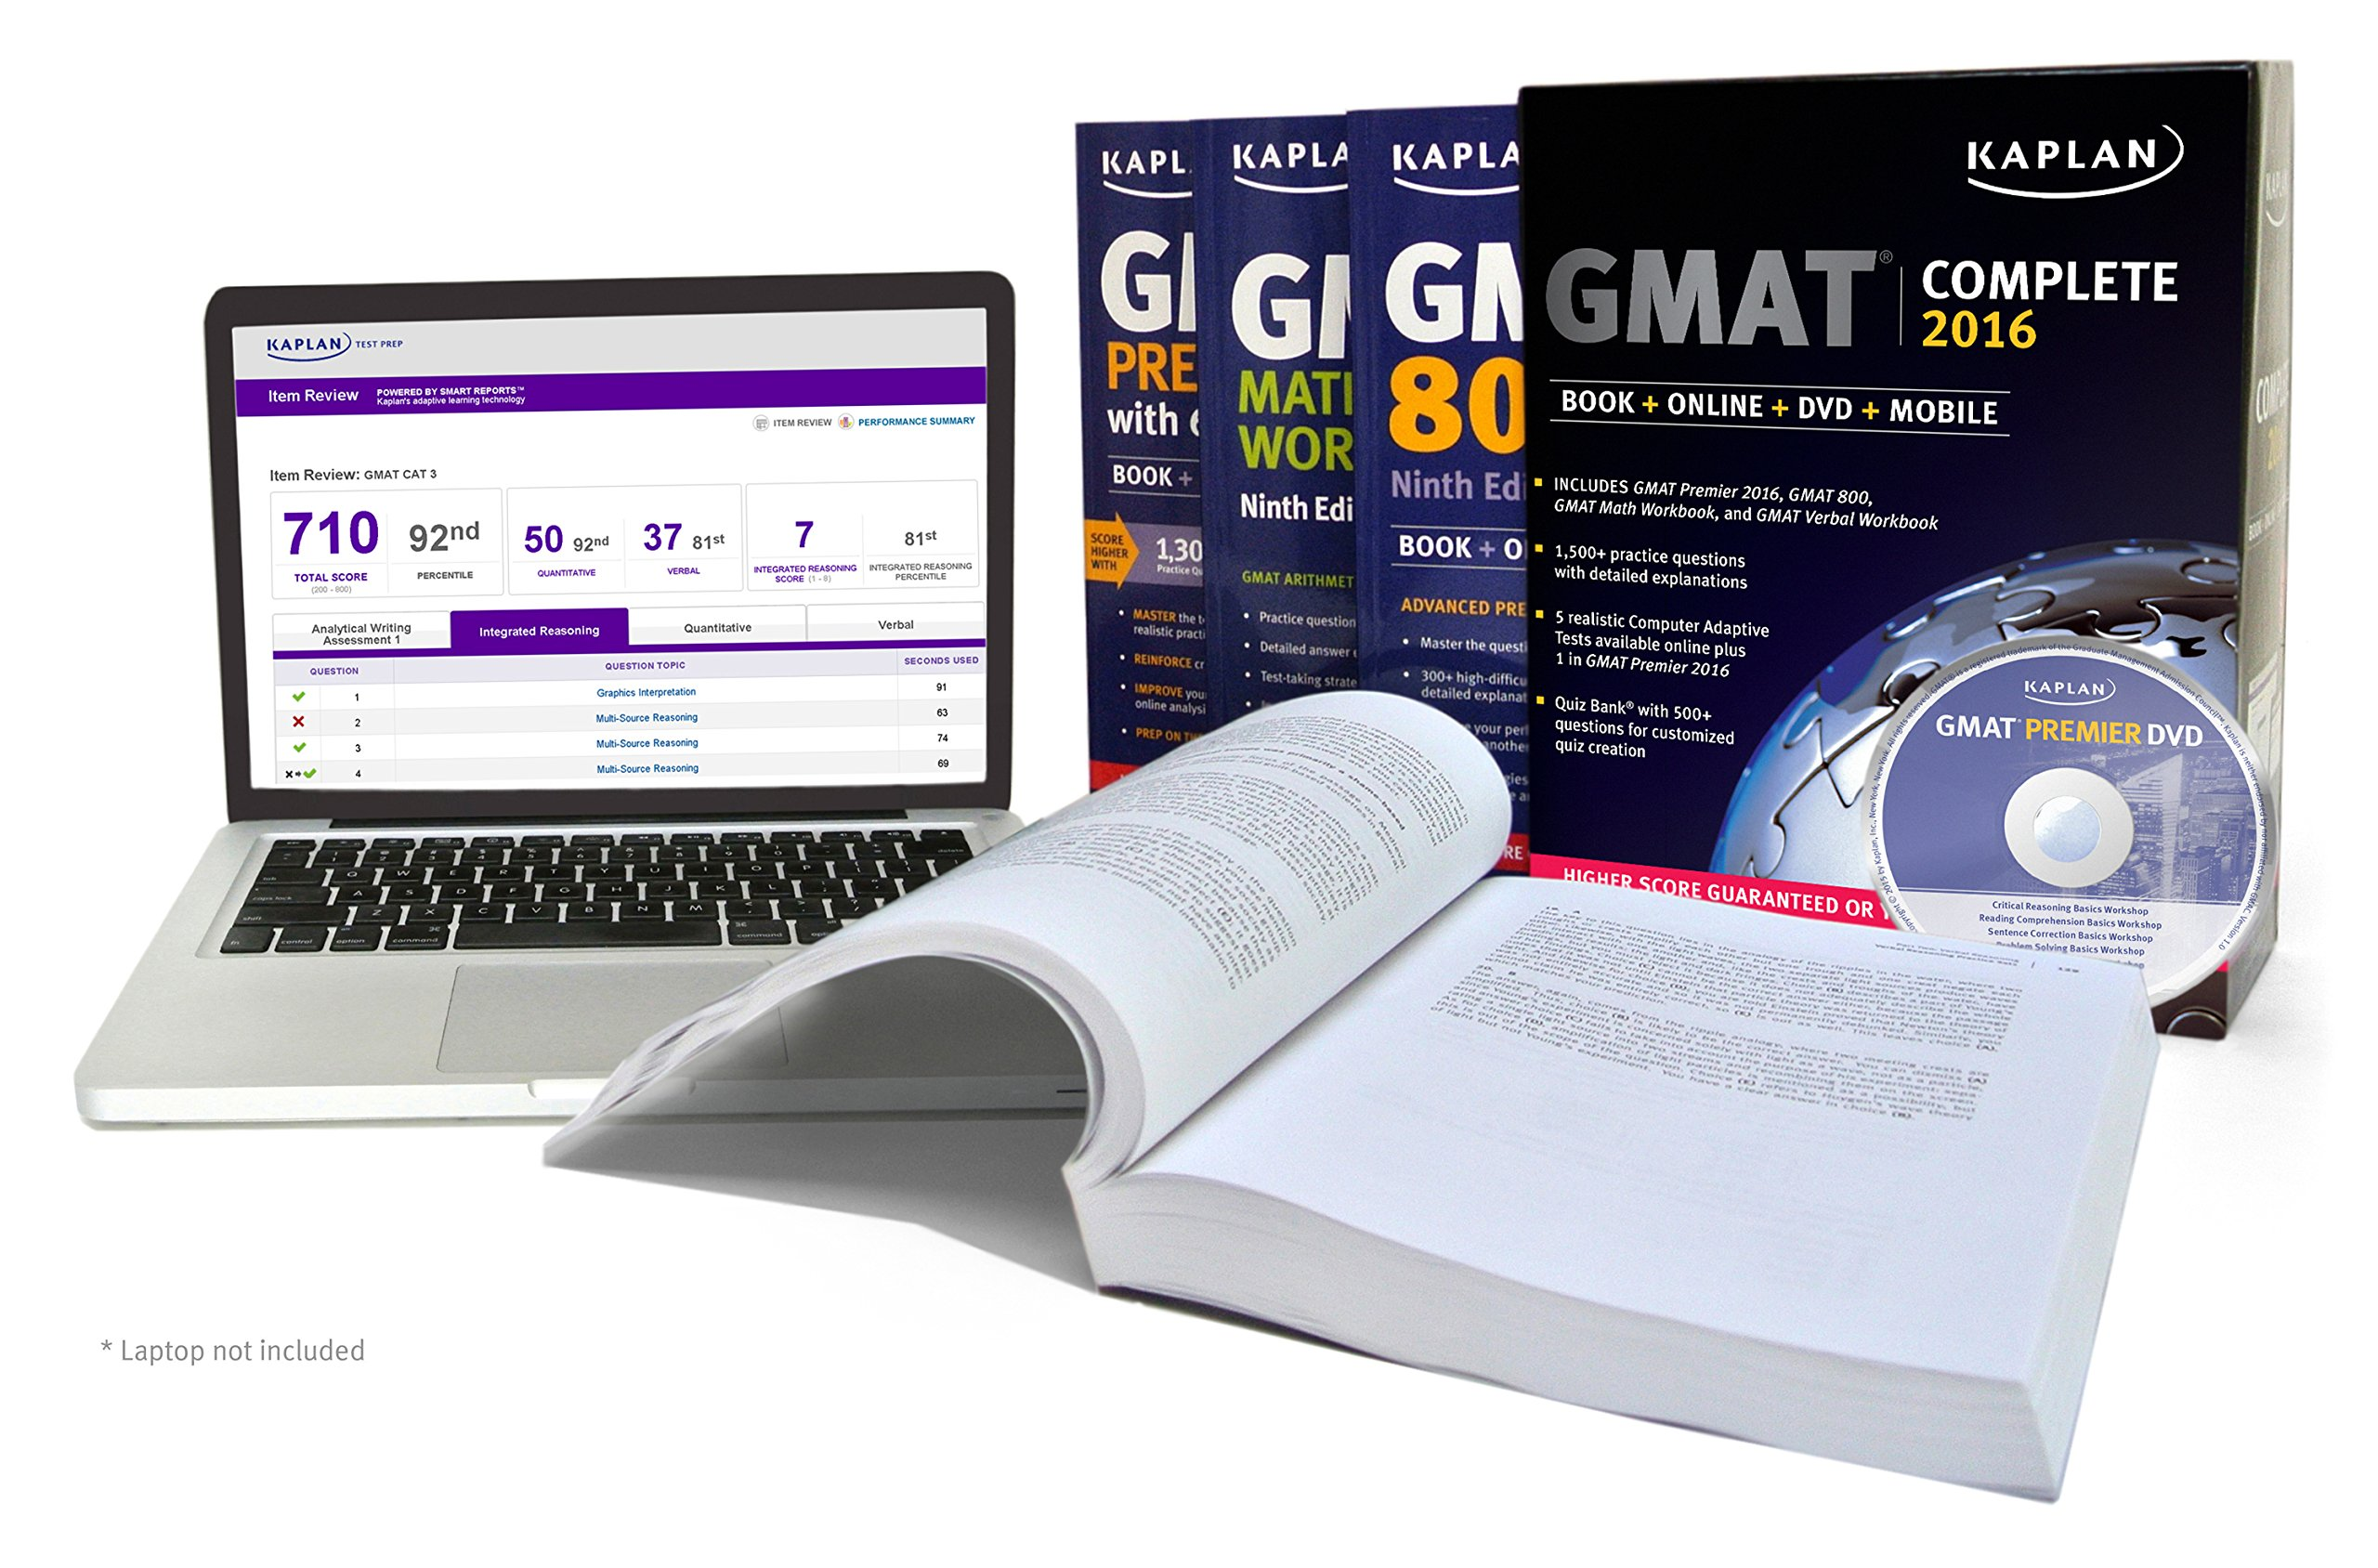 Buy Kaplan GMAT Complete 2016: The Ultimate in Comprehensive Self-Study for  GMAT: Book + Online + DVD + Mobile (Kaplan Test Prep) Book Online at Low  Prices ...